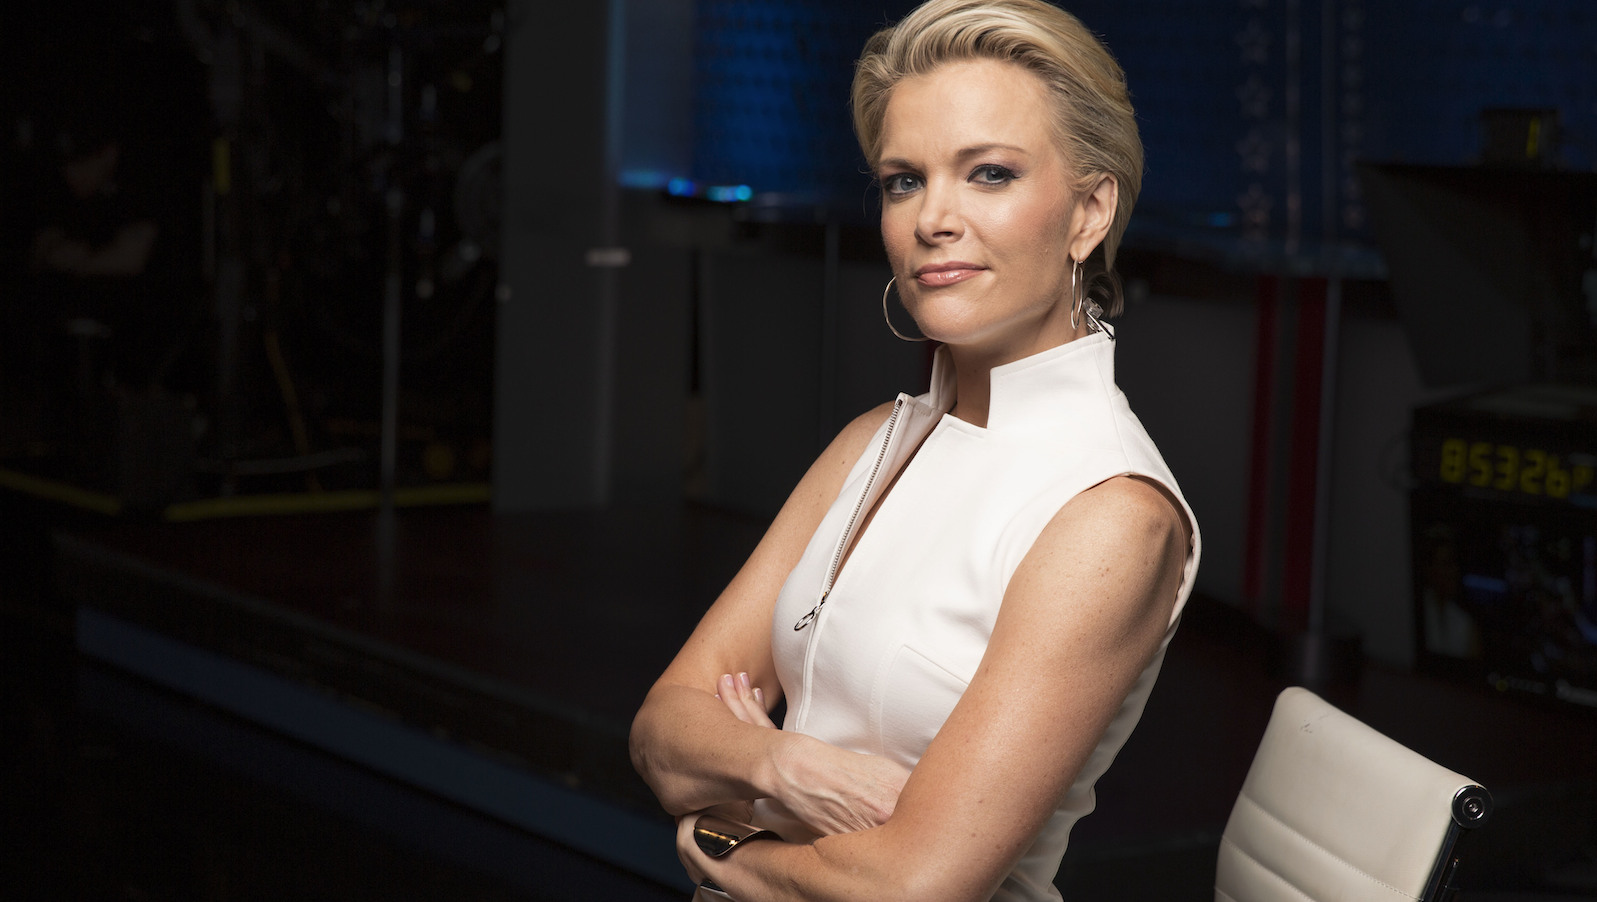 """FILE - In this May 5, 2016 file photo, Megyn Kelly poses for a portrait in New York. Kelly is calling on President-elect Donald Trump's social media director to stop encouraging hostile elements among some of his supporters. London-based newspaper, The Guardian, reports that the Fox News anchor told an audience at a speaking event in Washington Monday, Dec. 5, 2016, that there's a small group of Trump supporters """"that really enjoys nastiness and threats."""" She said Dan Scavino's job during the campaign was """"to stir these people up and that man needs to stop doing that.""""(Photo by Victoria Will/Invision/AP, File)"""